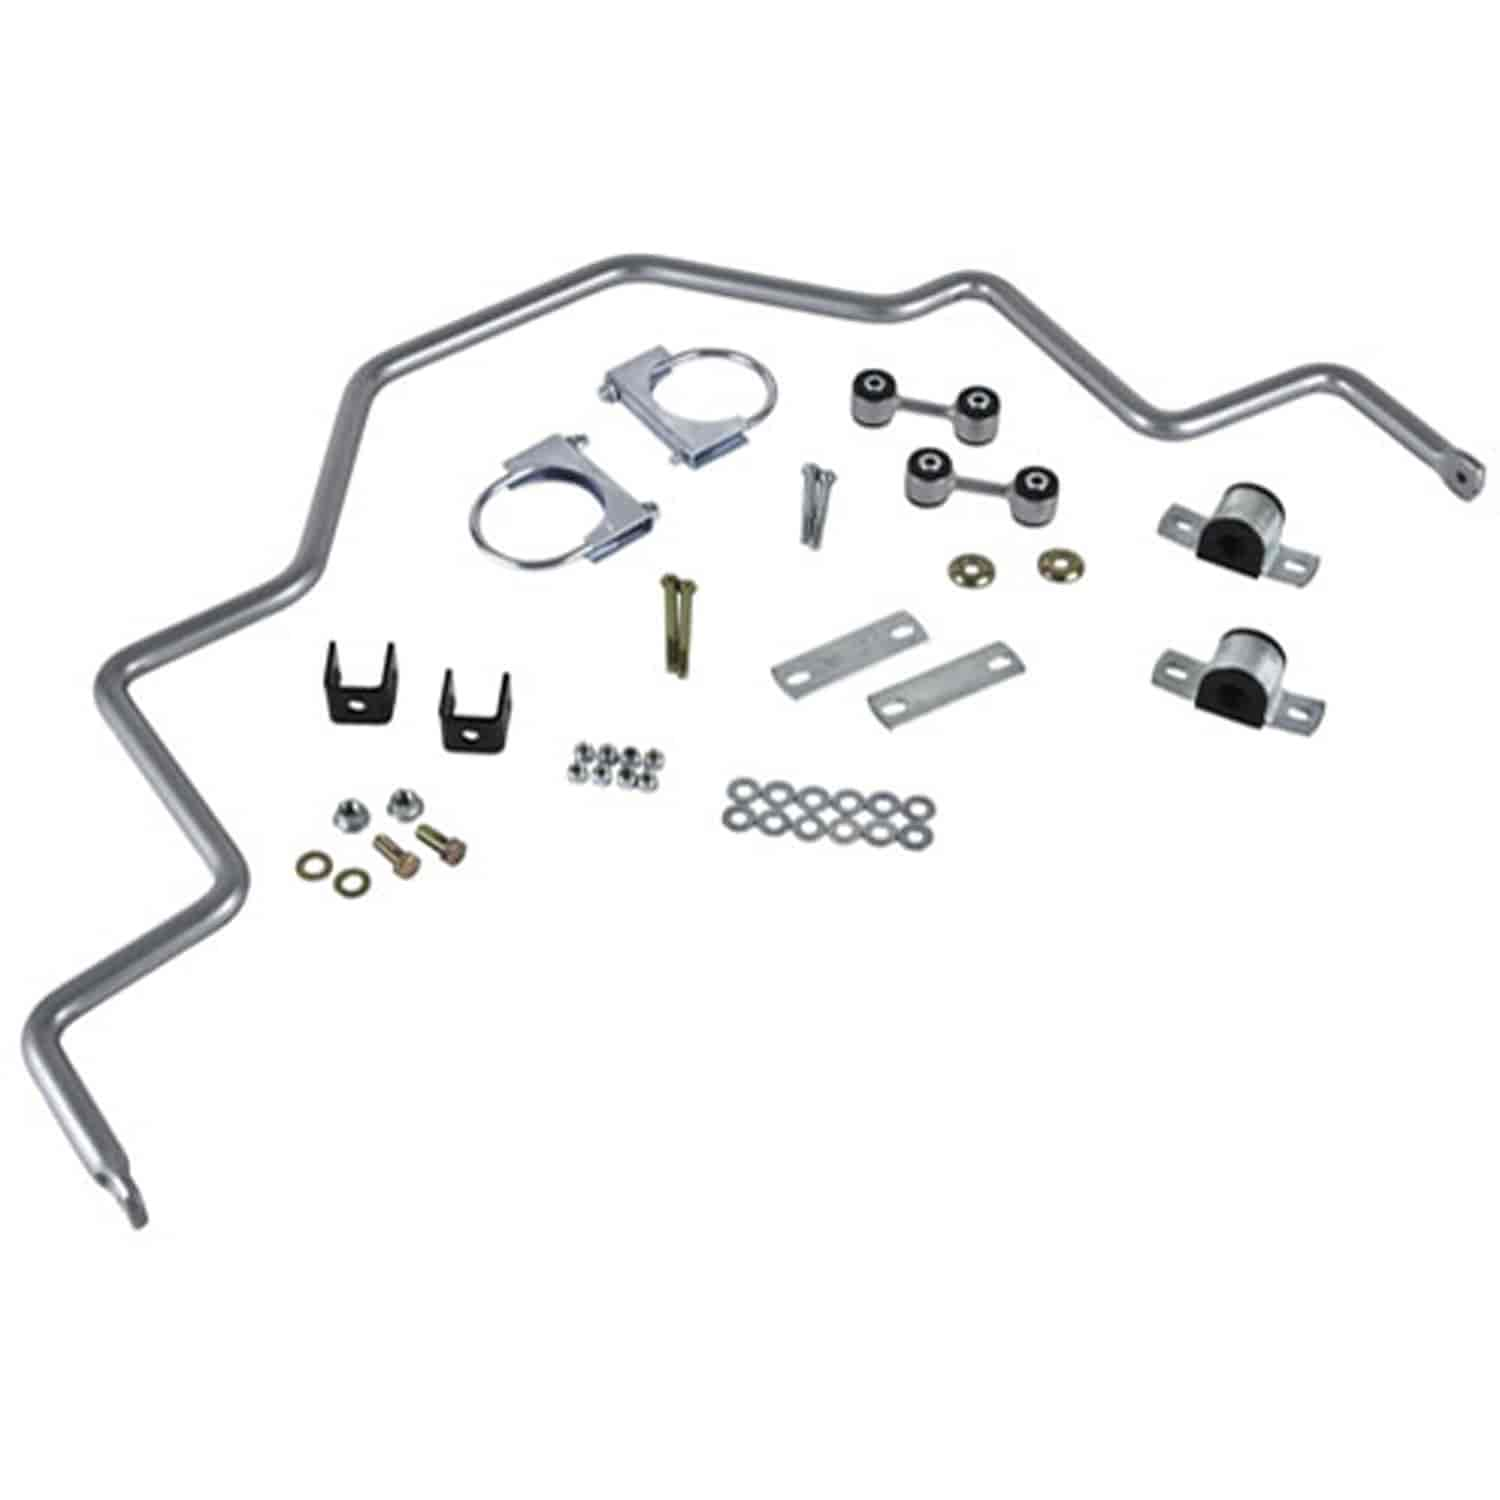 Belltech Rear Sway Bar Kit For Up Ford F 150